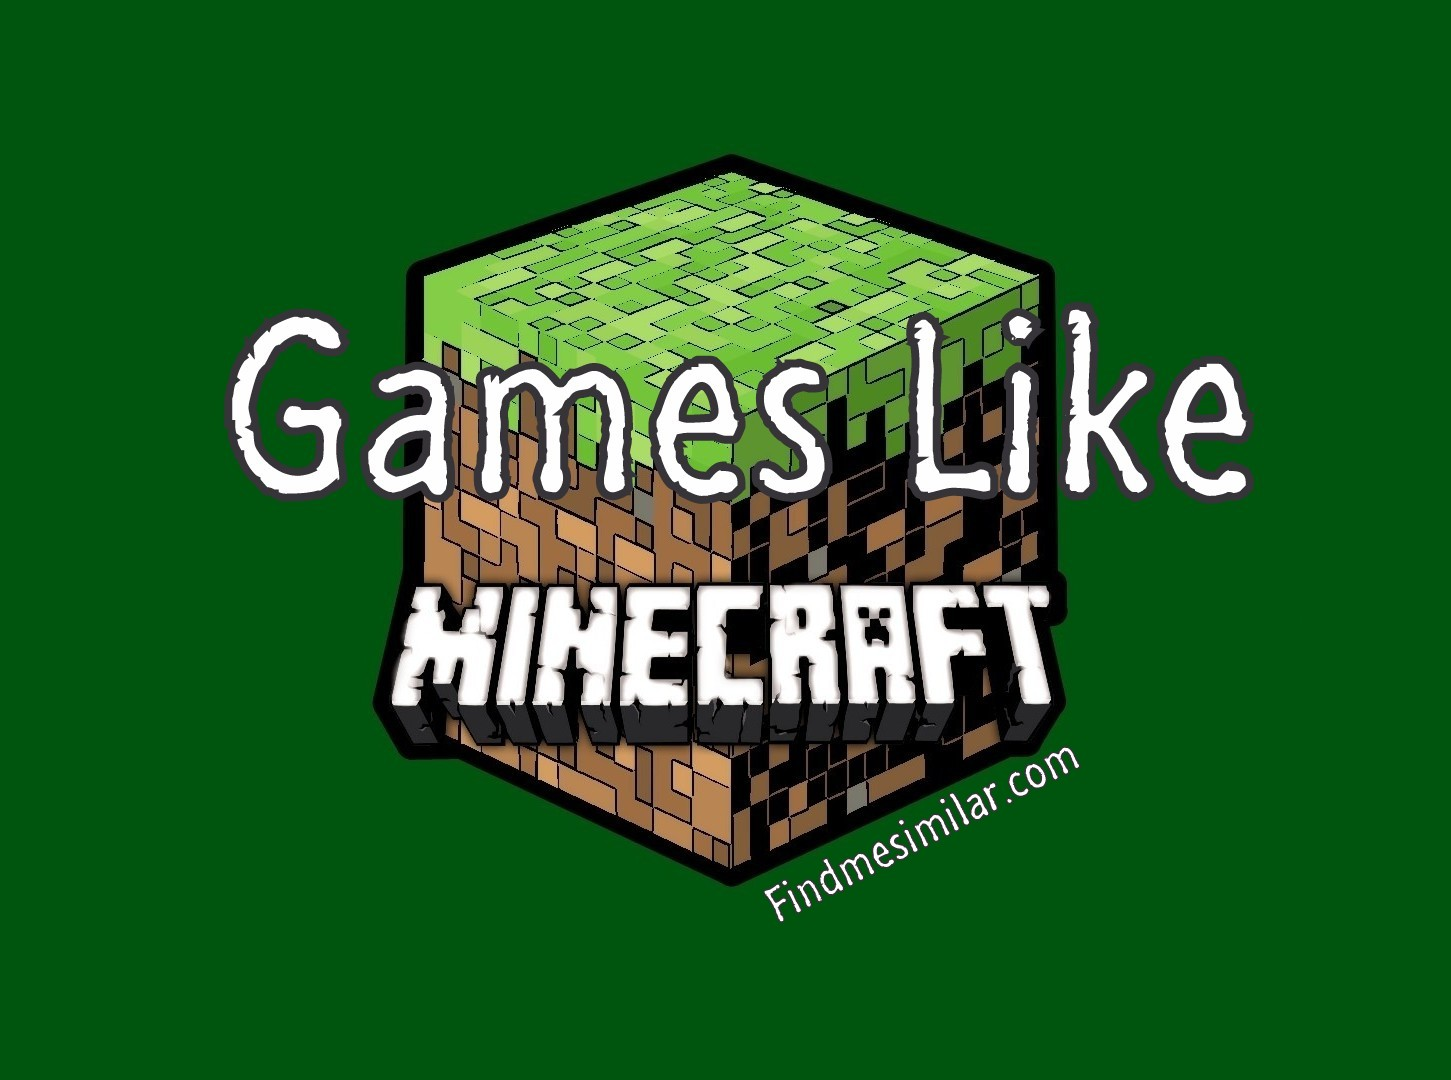 Games like Minecraft, Minecraft